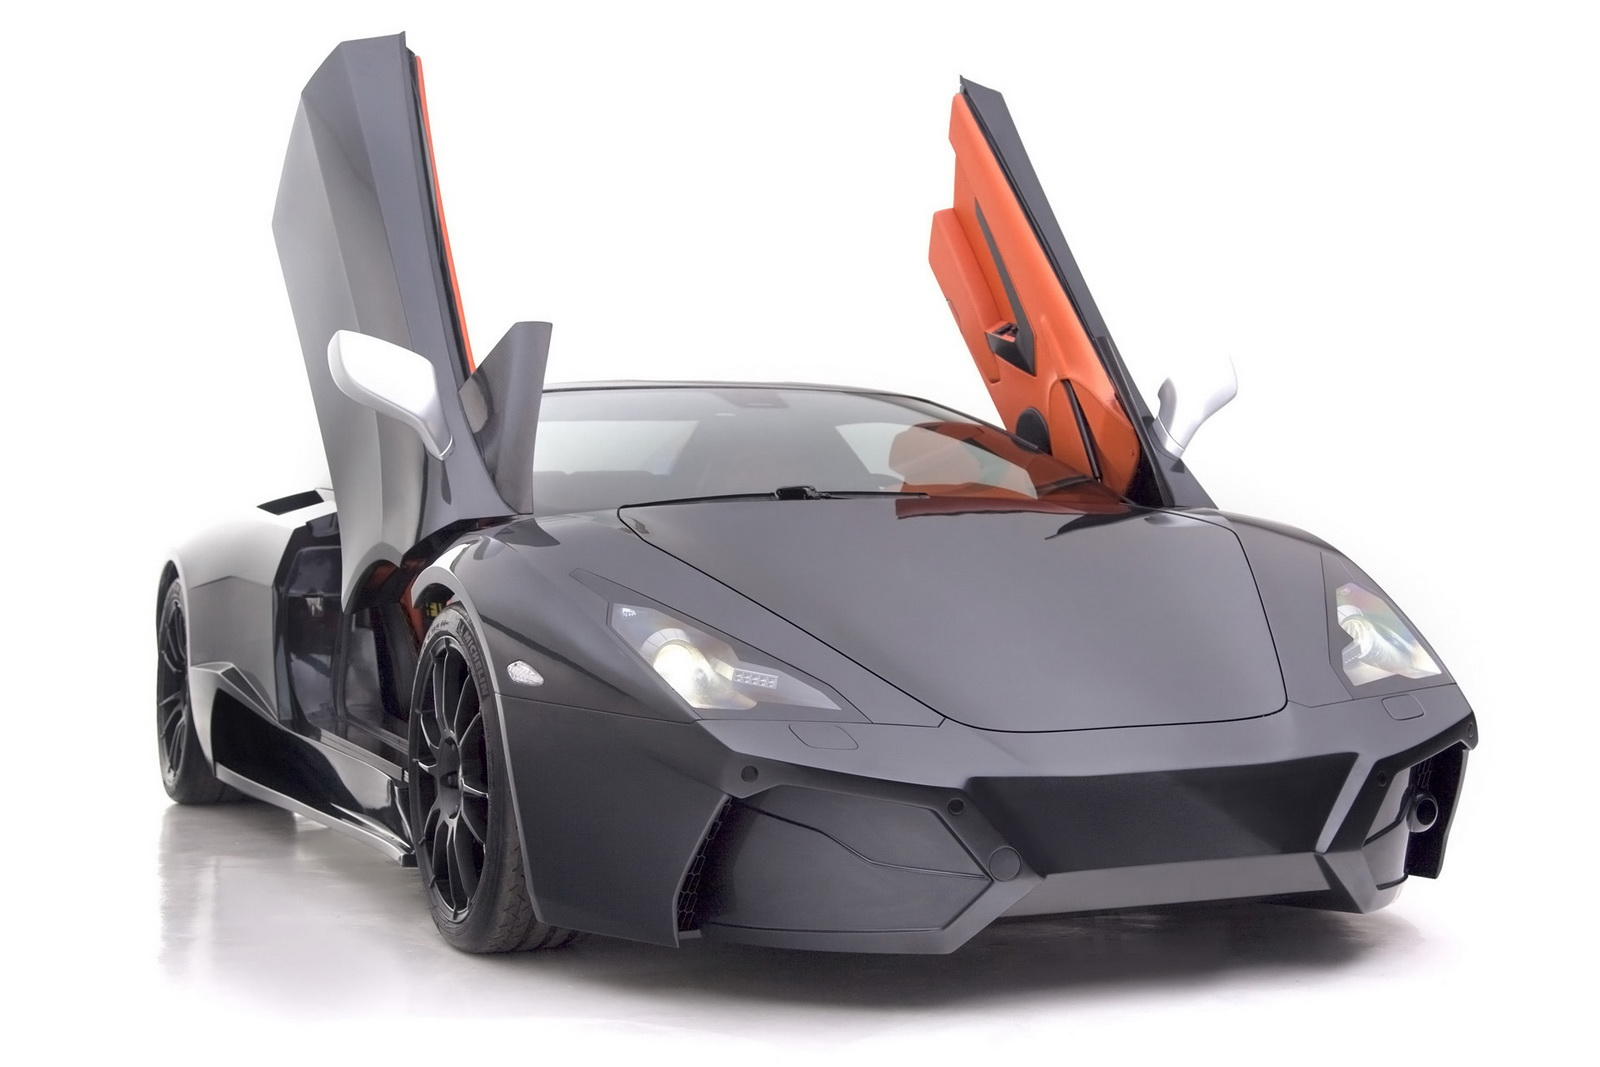 Polands Arrinera Supercar 4 Arrinera   Super Car with Aerodynamic Features